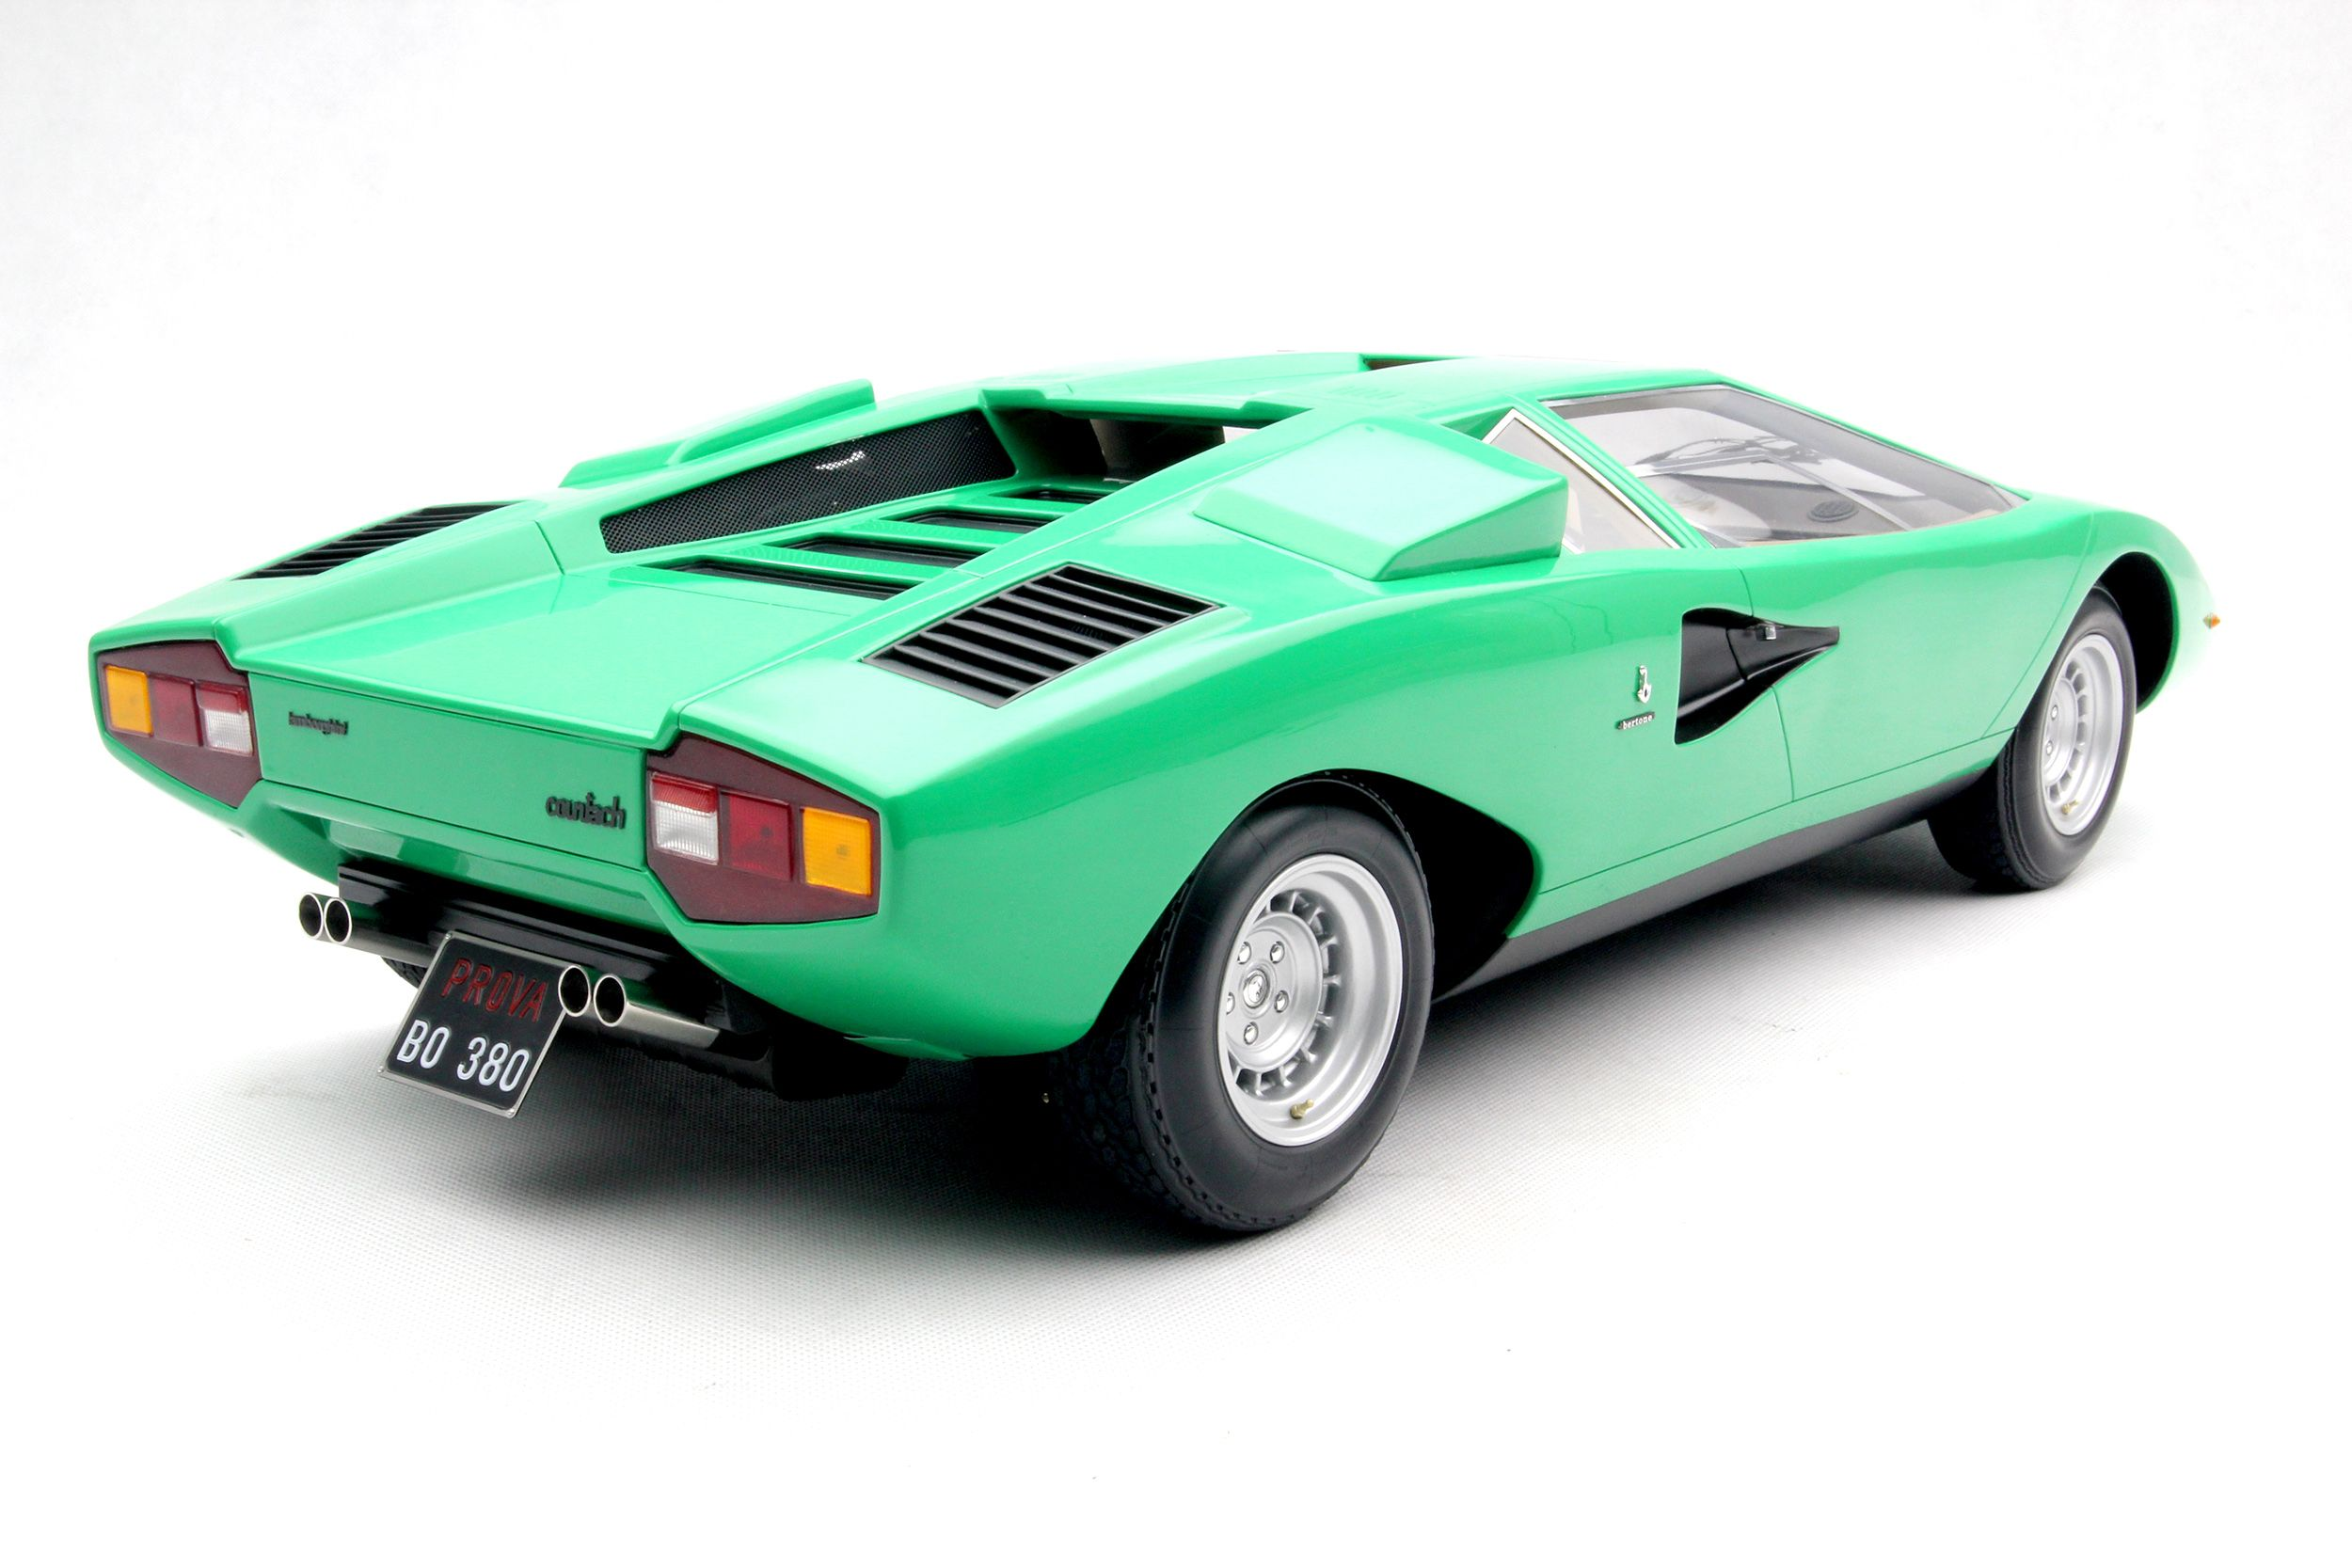 #Lamborghini #Countach GREEN